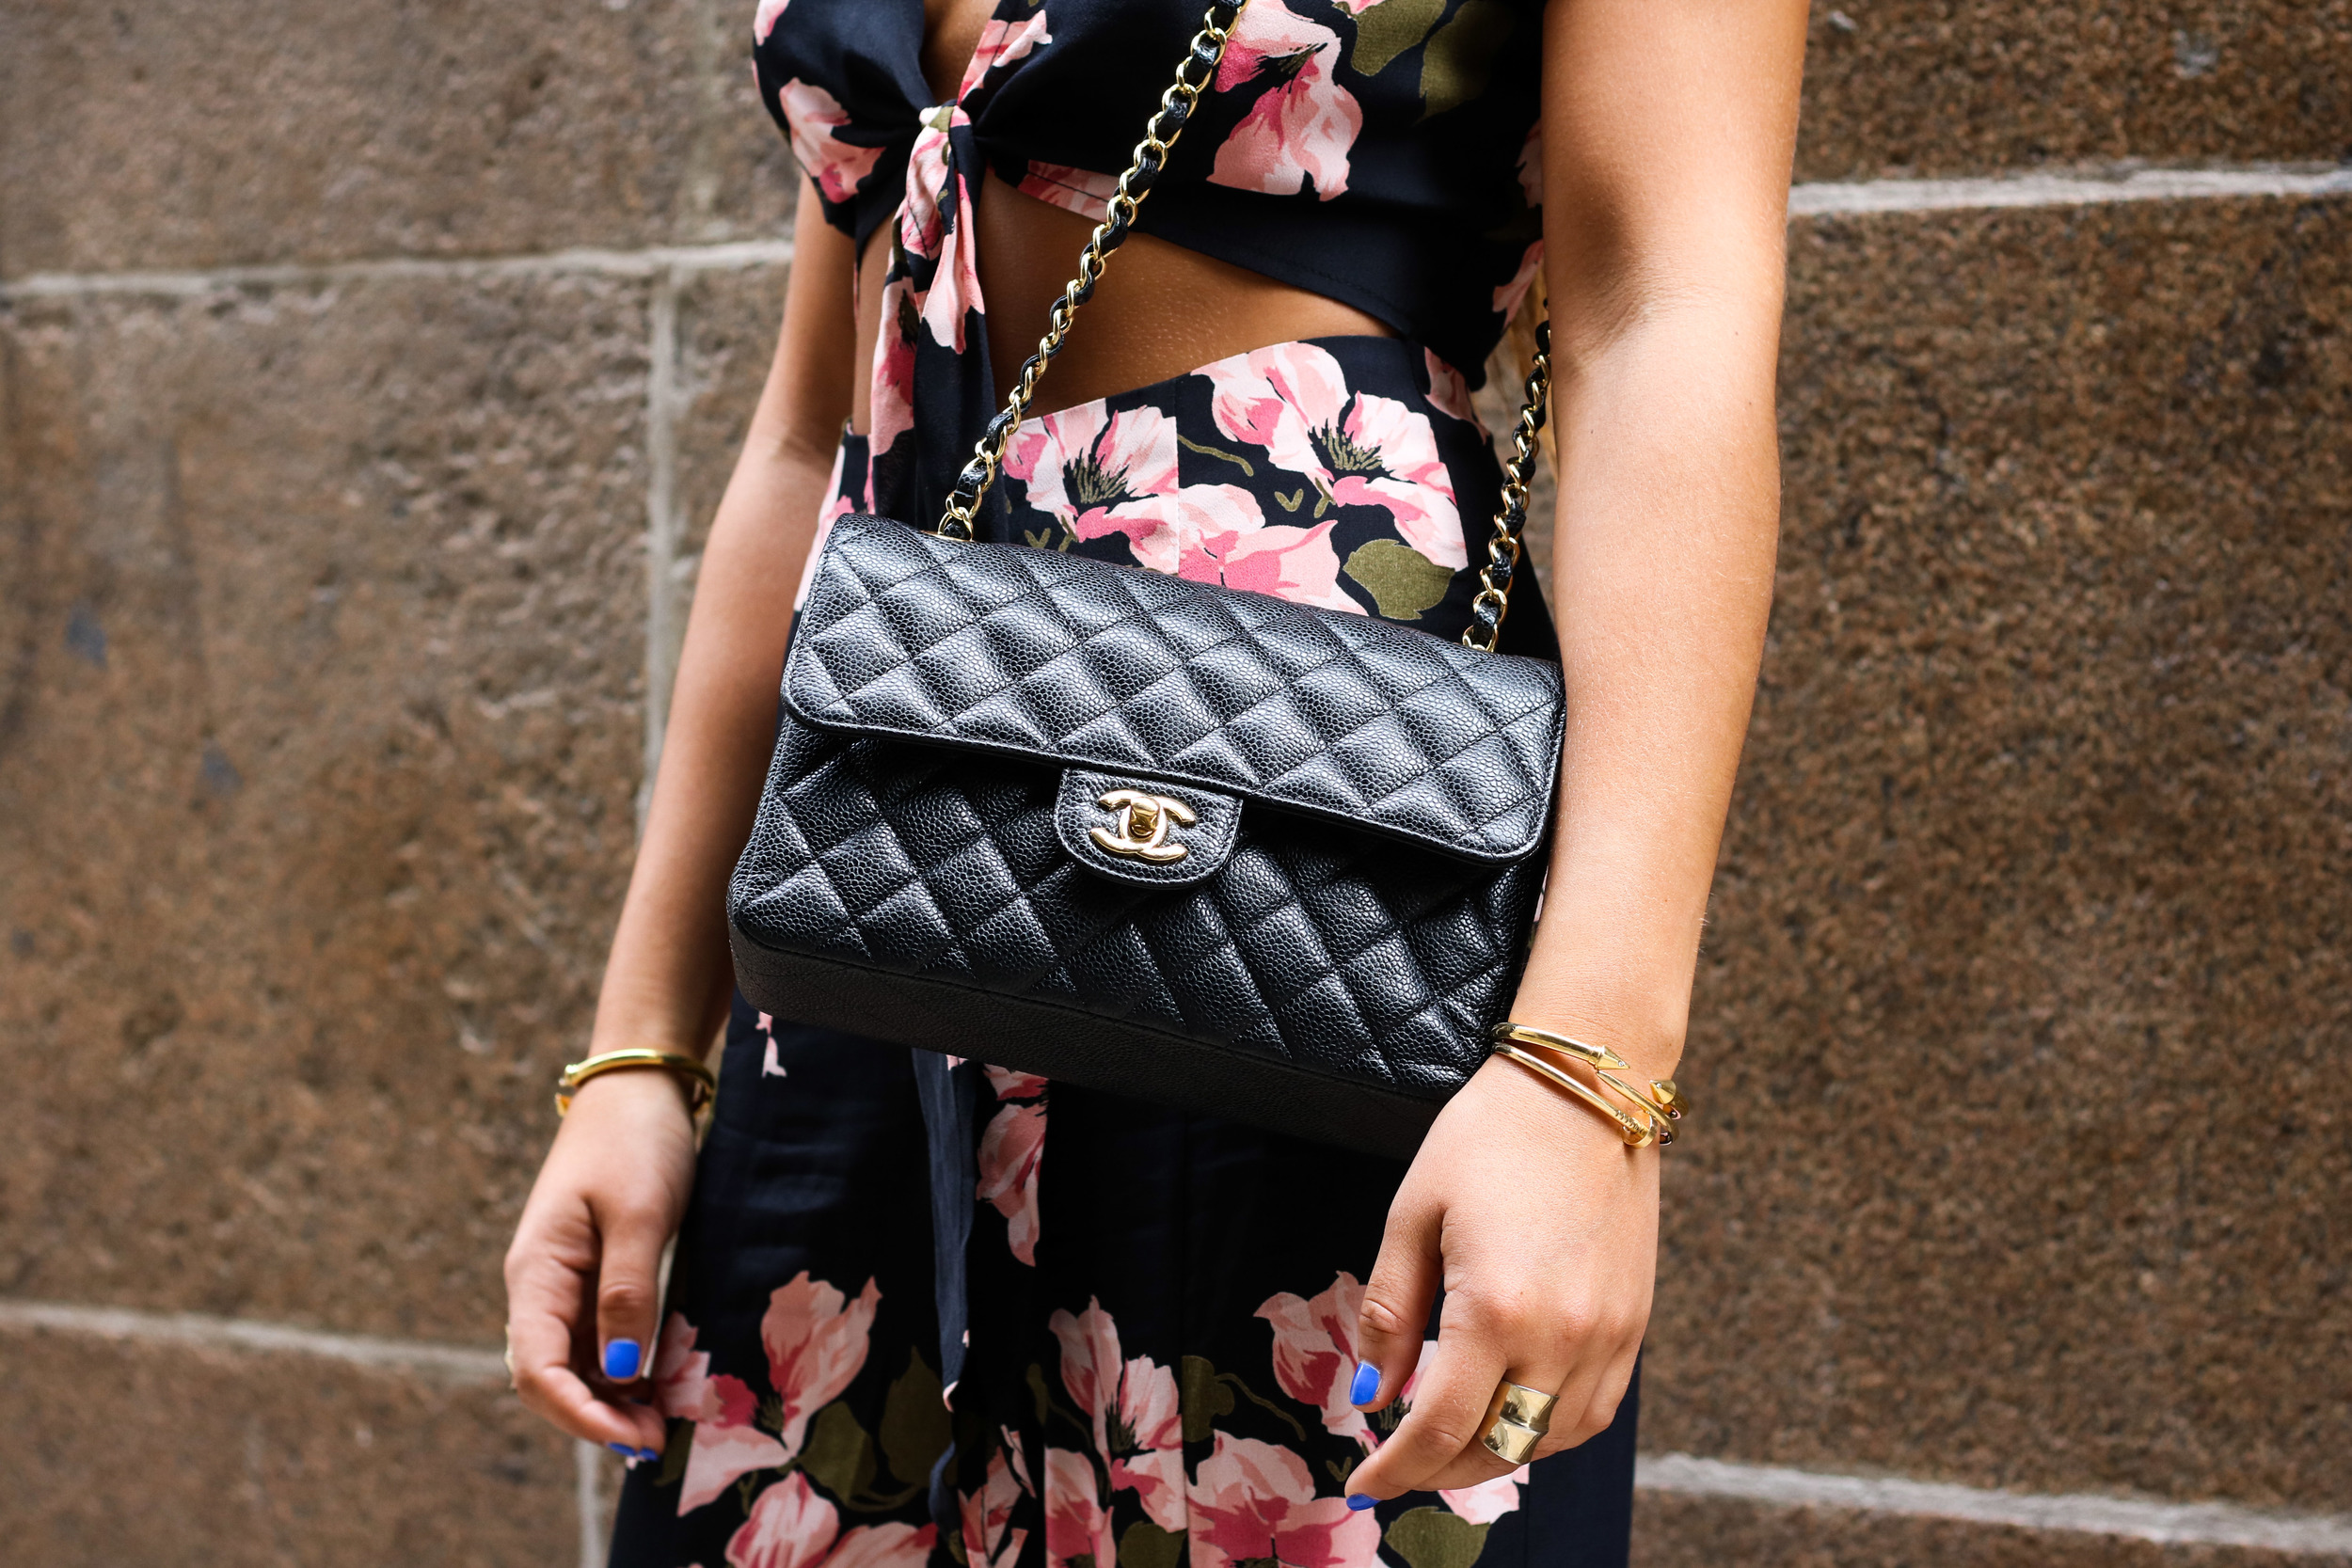 CHANEL CLASSIC QUILTED BAG DETAILS